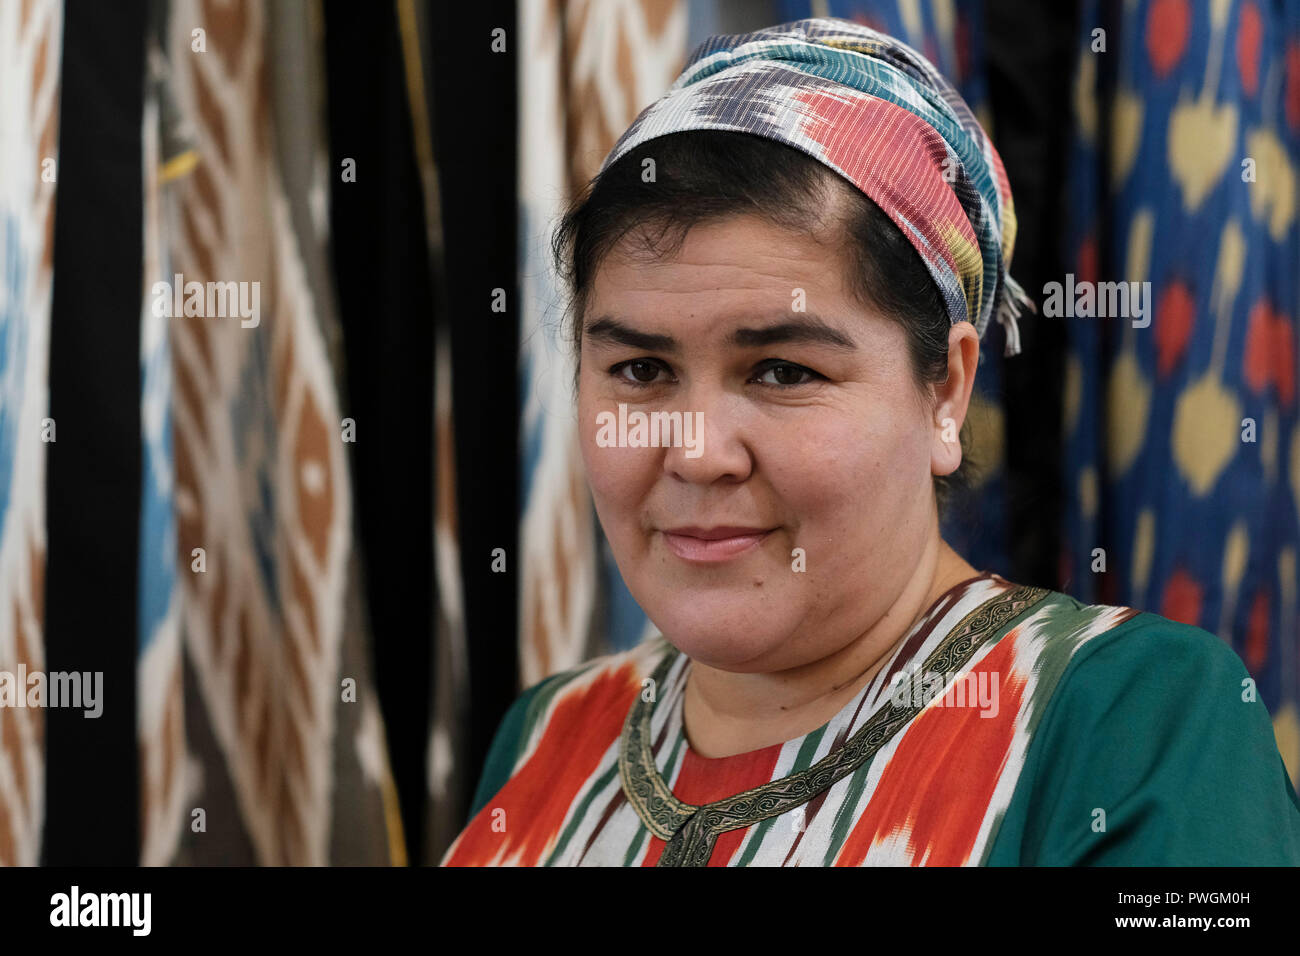 An Uzbek woman wearing traditional garment in the city of Tashkent capital  of Uzbekistan - Stock 68a4b31f0798